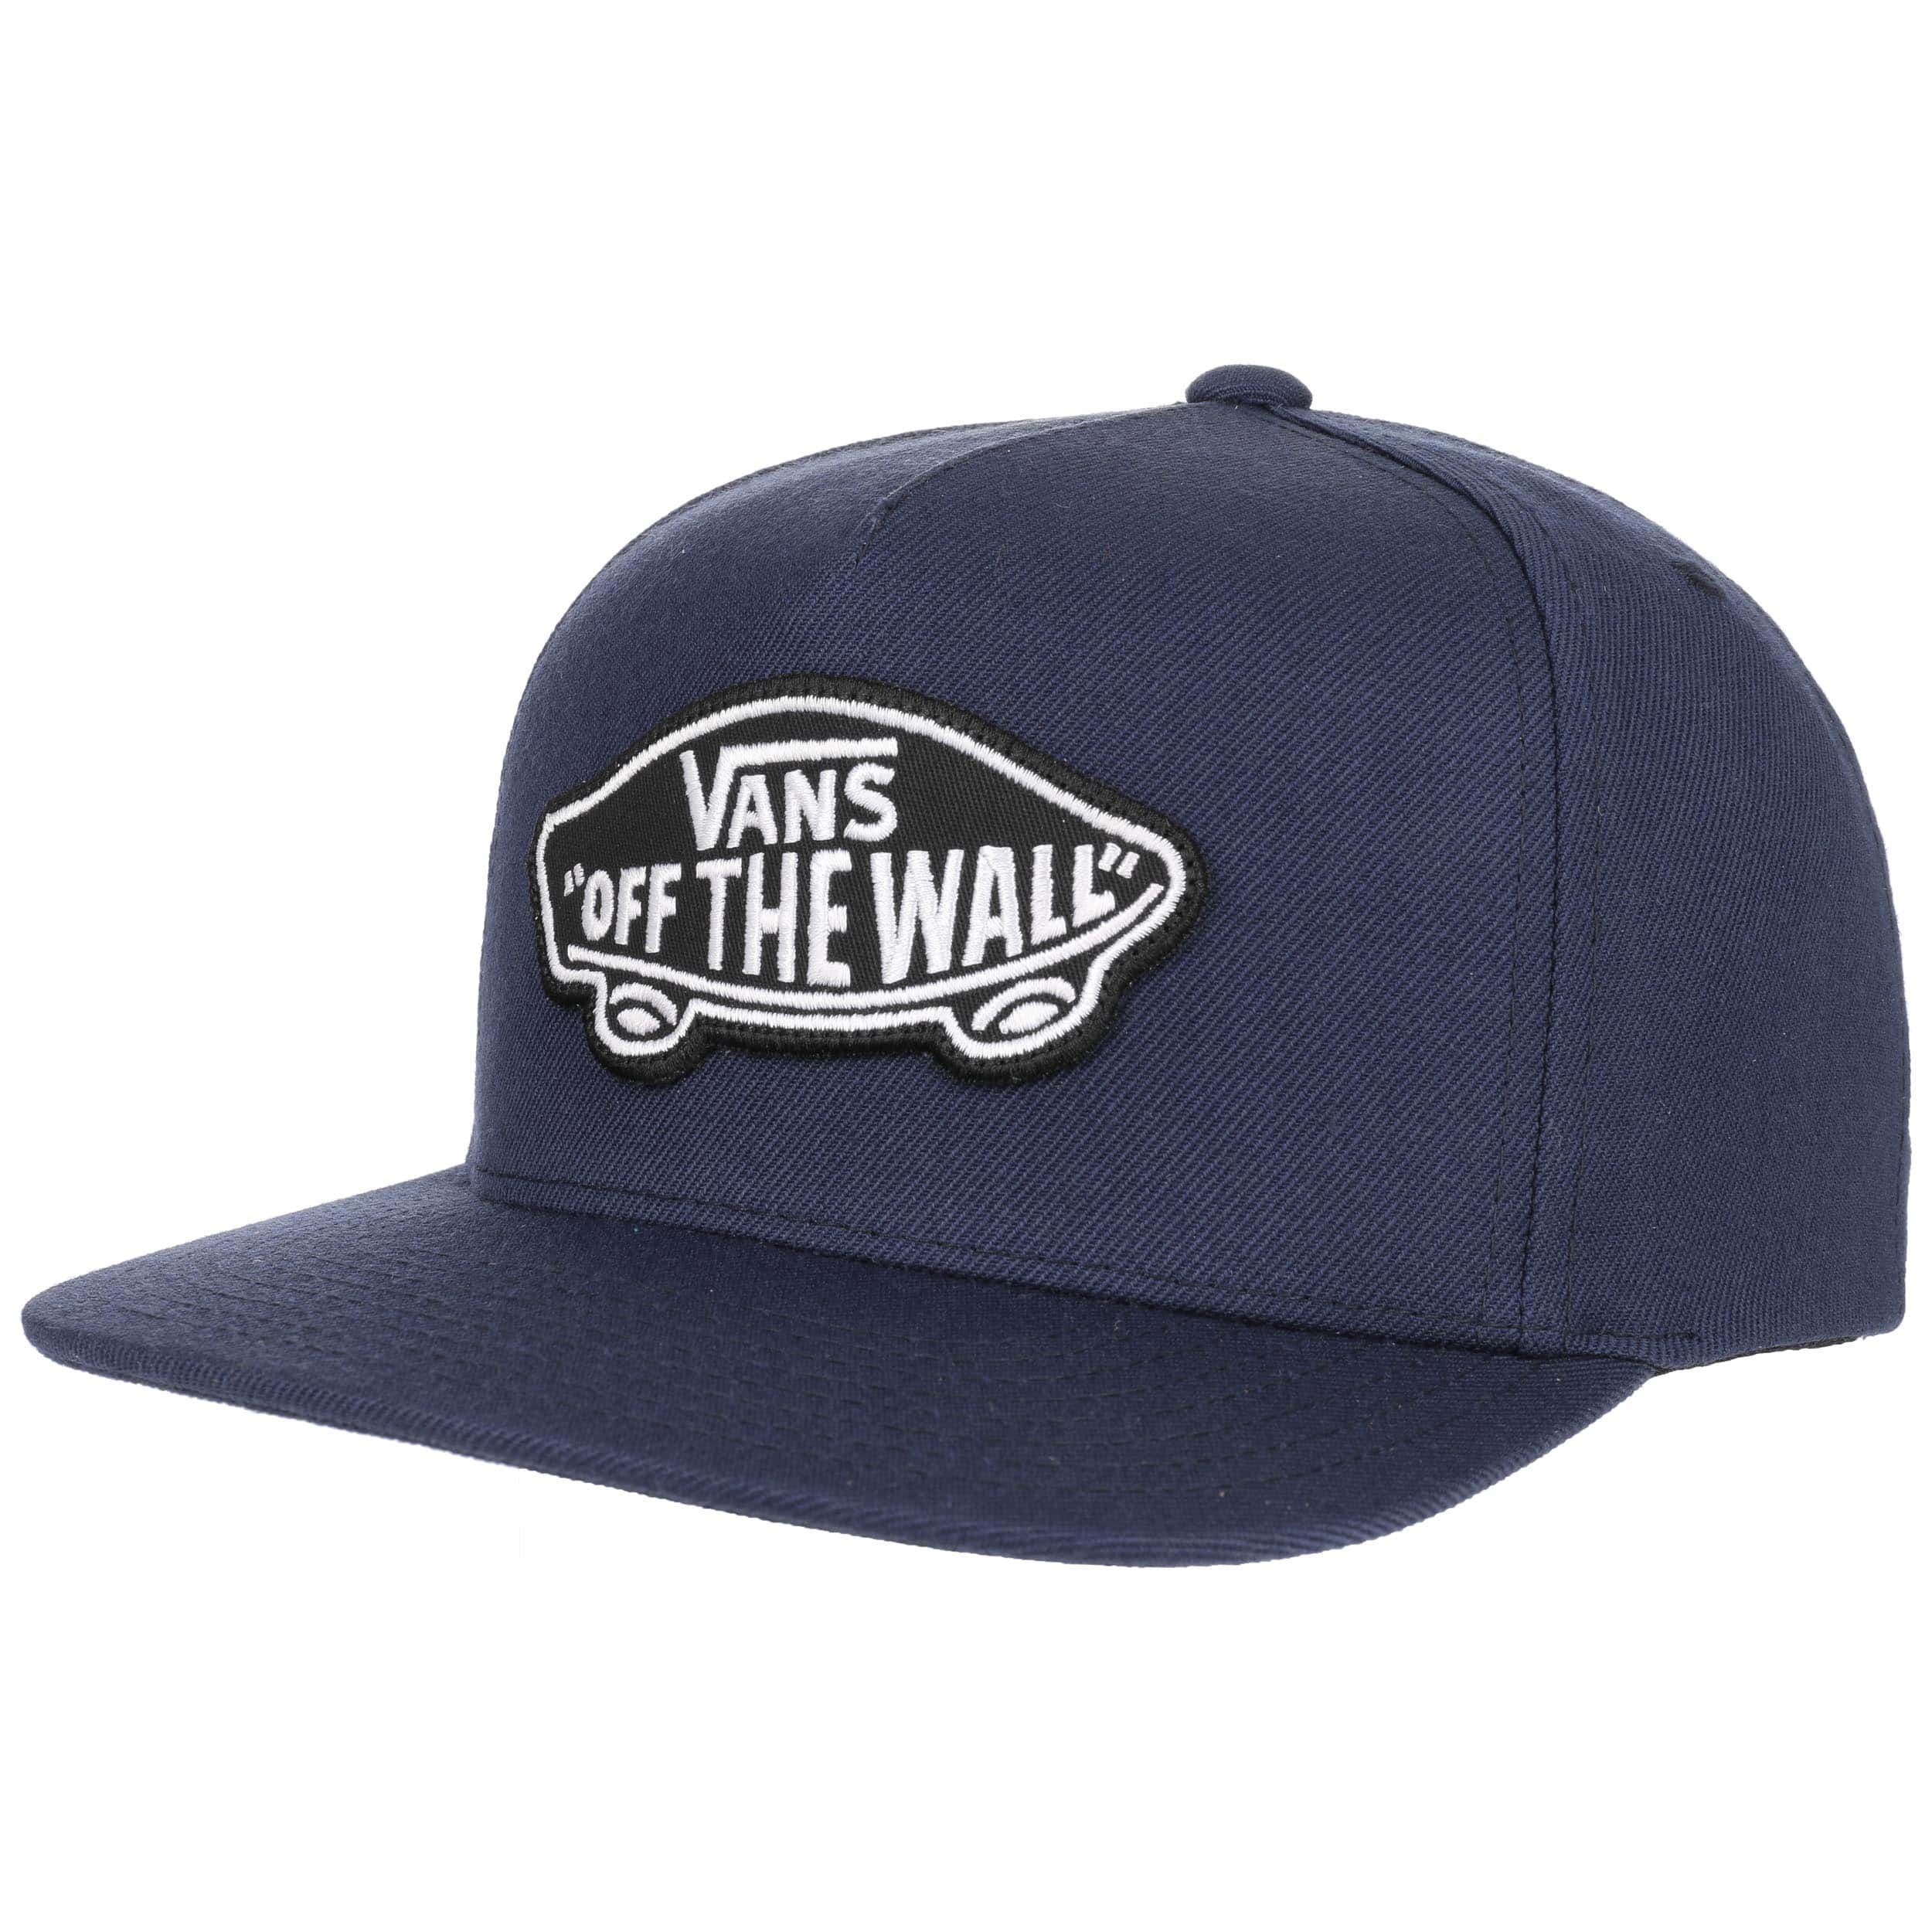 c6a47816 ... Classic Patch Snapback Cap by Vans - navy 5 ...